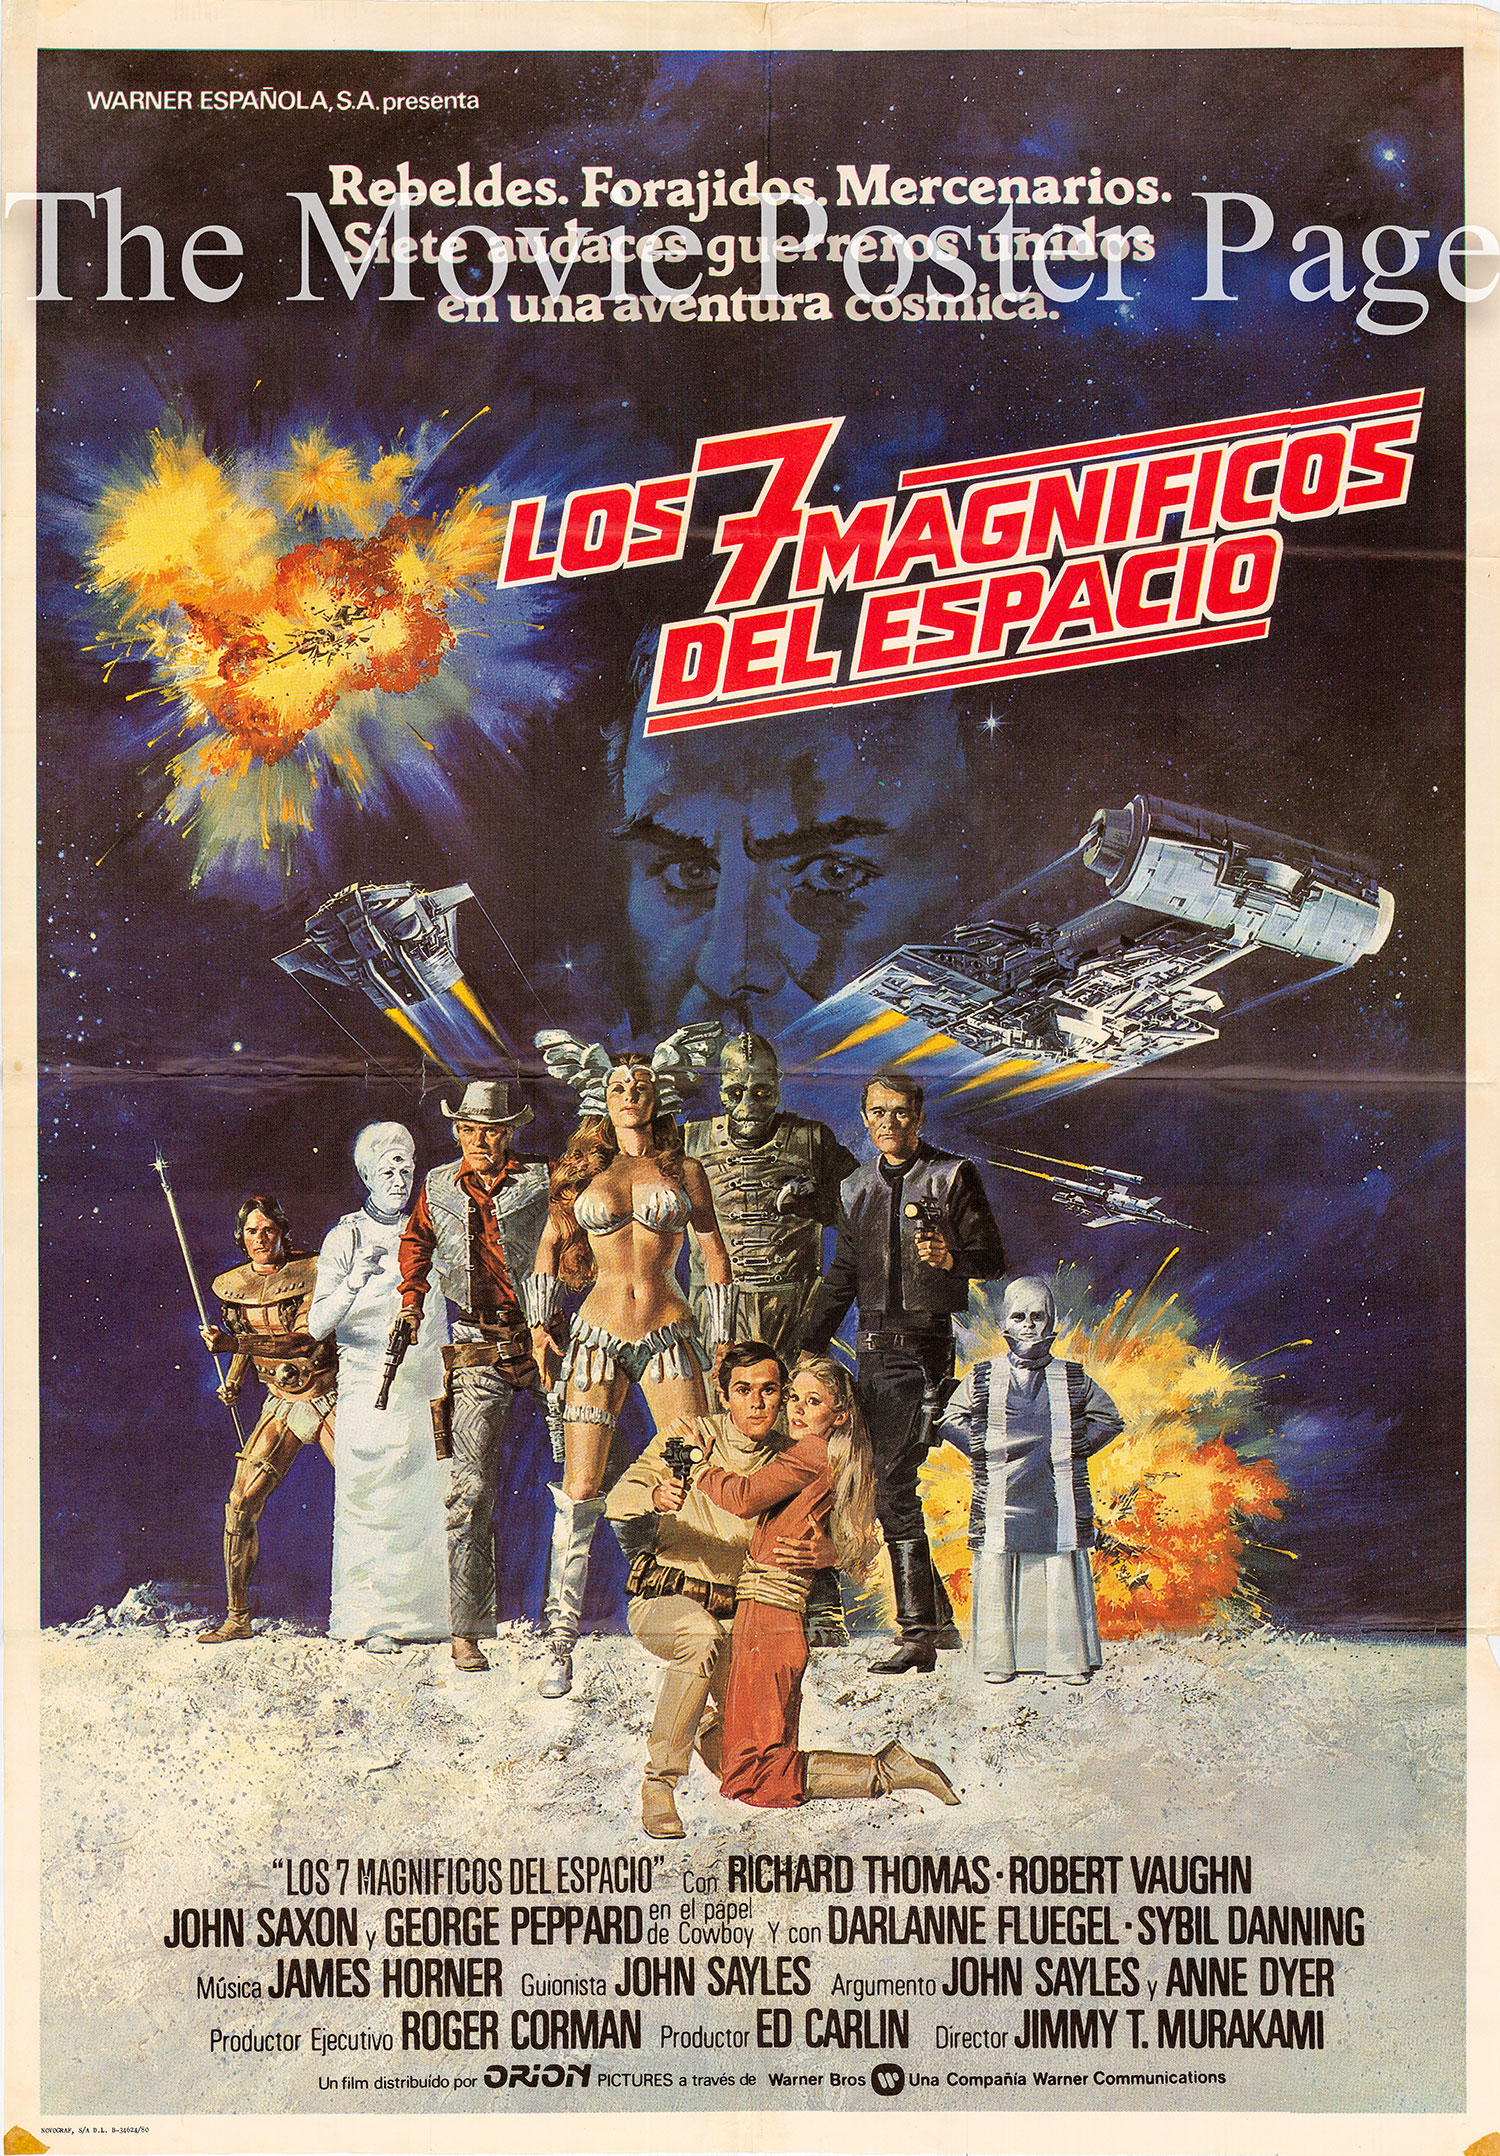 Pictured is a Spanish one-sheet poster for the 1980 Jimmy T. Murakami film Battle Beyond the Stars starring Richard Thomas.